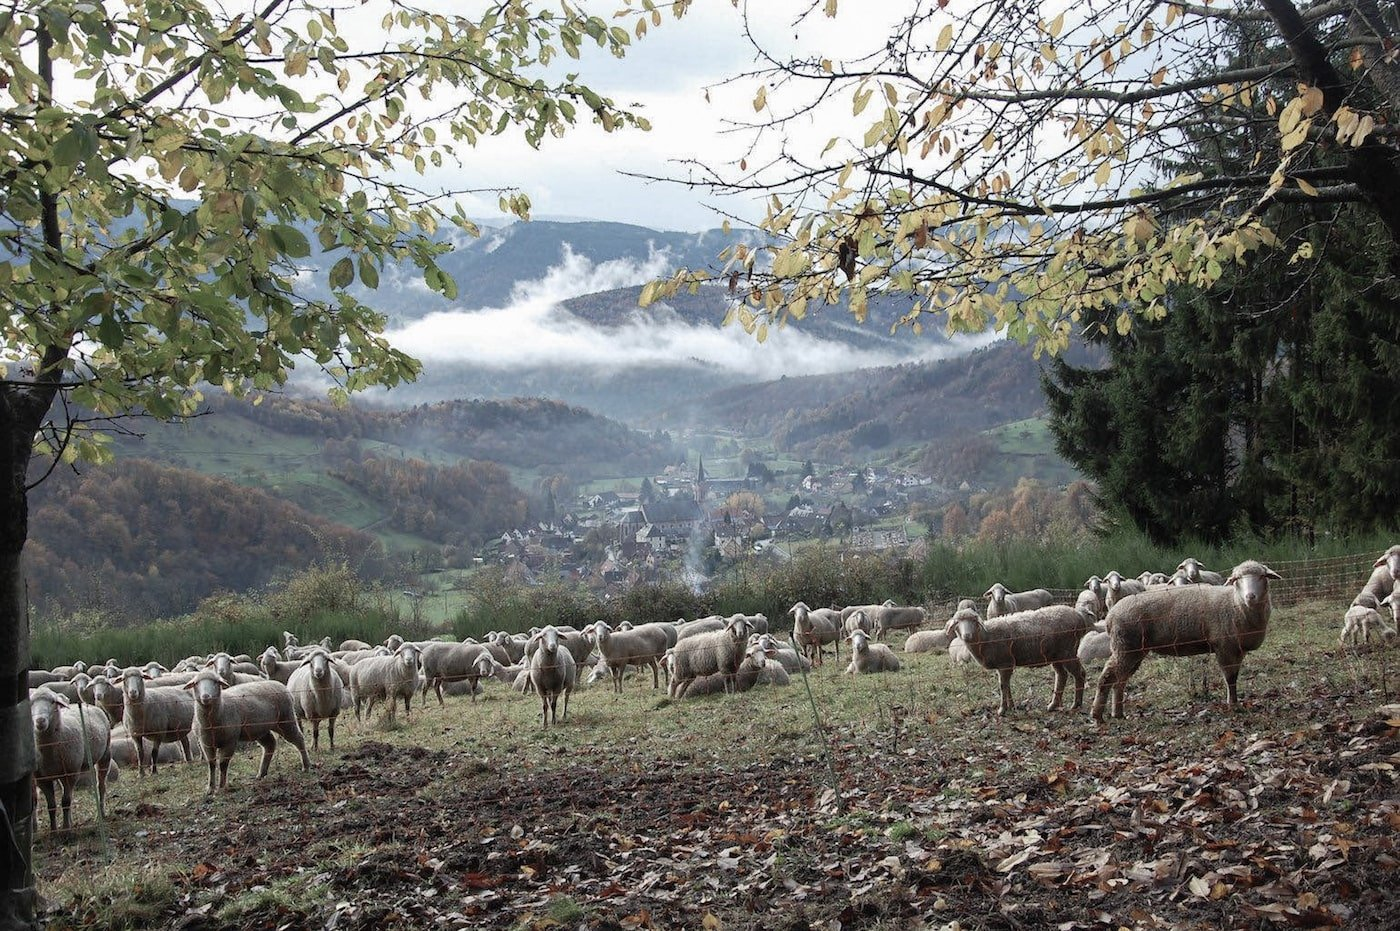 View of valley with sheep and mountains beyond